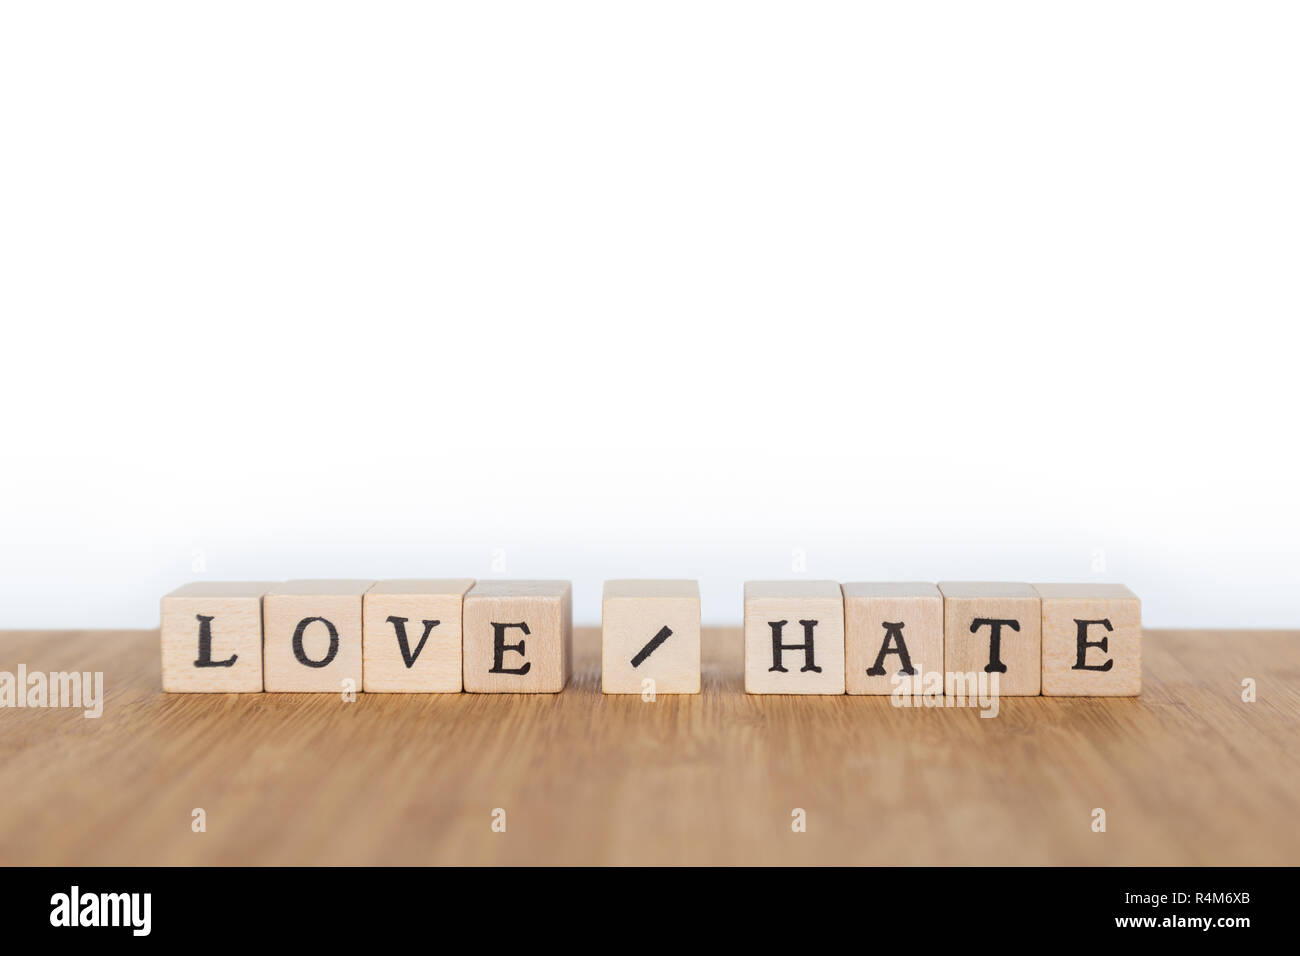 Focus on the words 'Love / Hate' made of wooden block dice with letters on a wooden table. Shallow depth of field. Copy space. - Stock Image